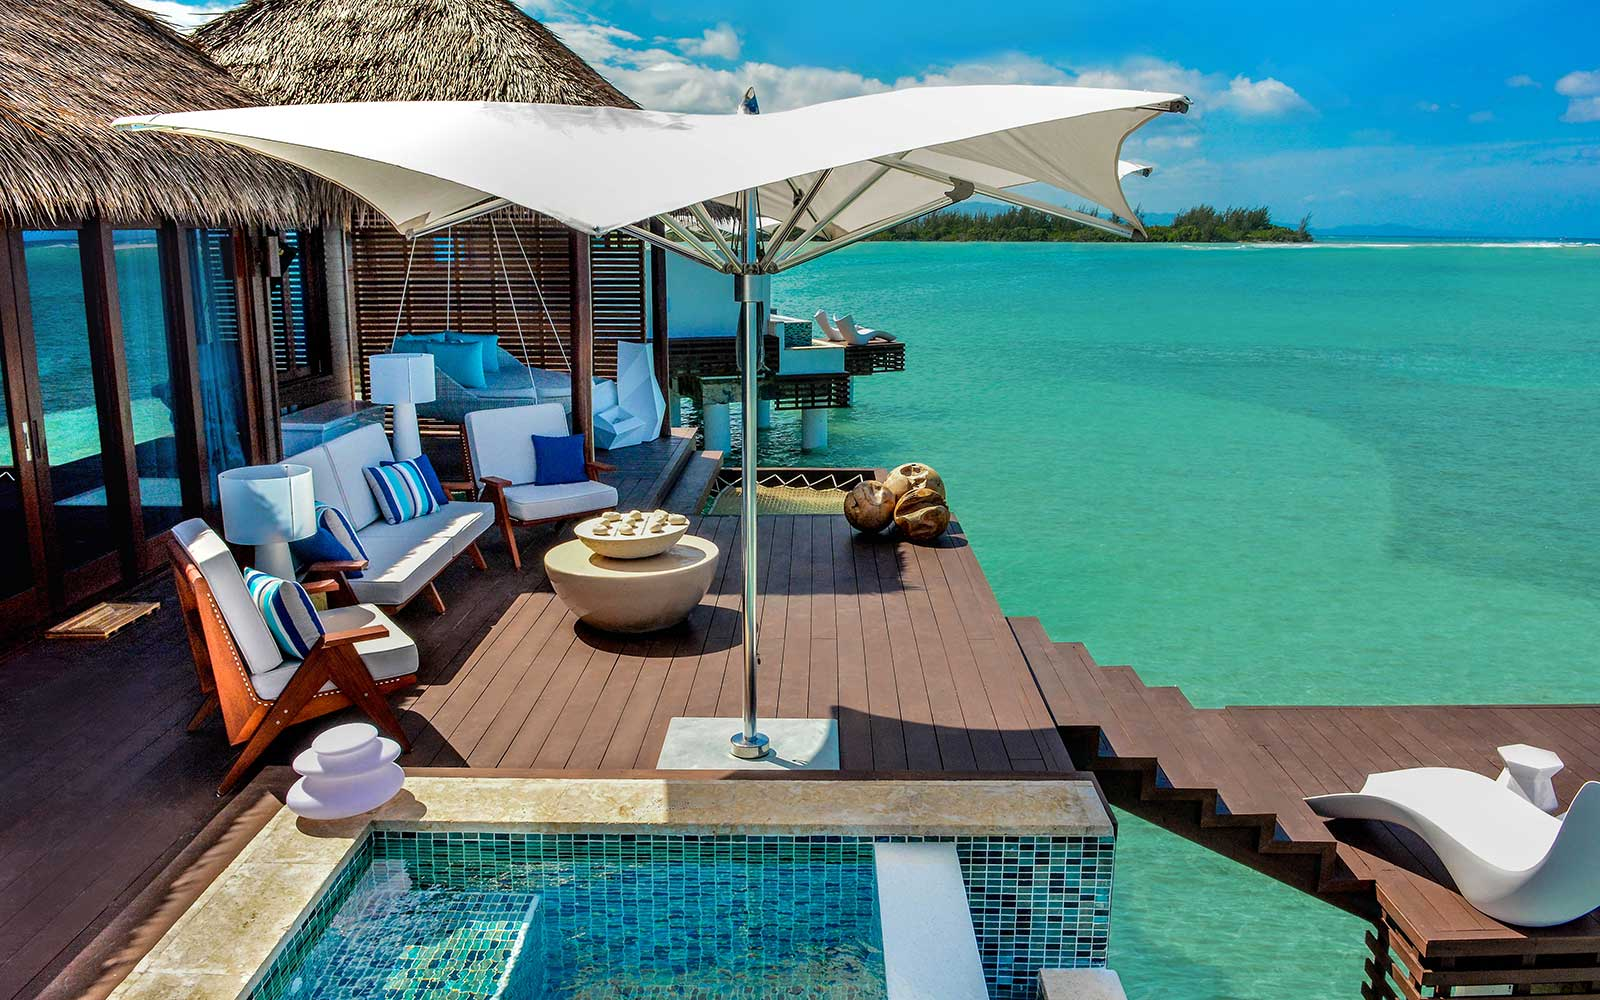 Fly to a beautiful overwater bungalow for only $279 round-trip